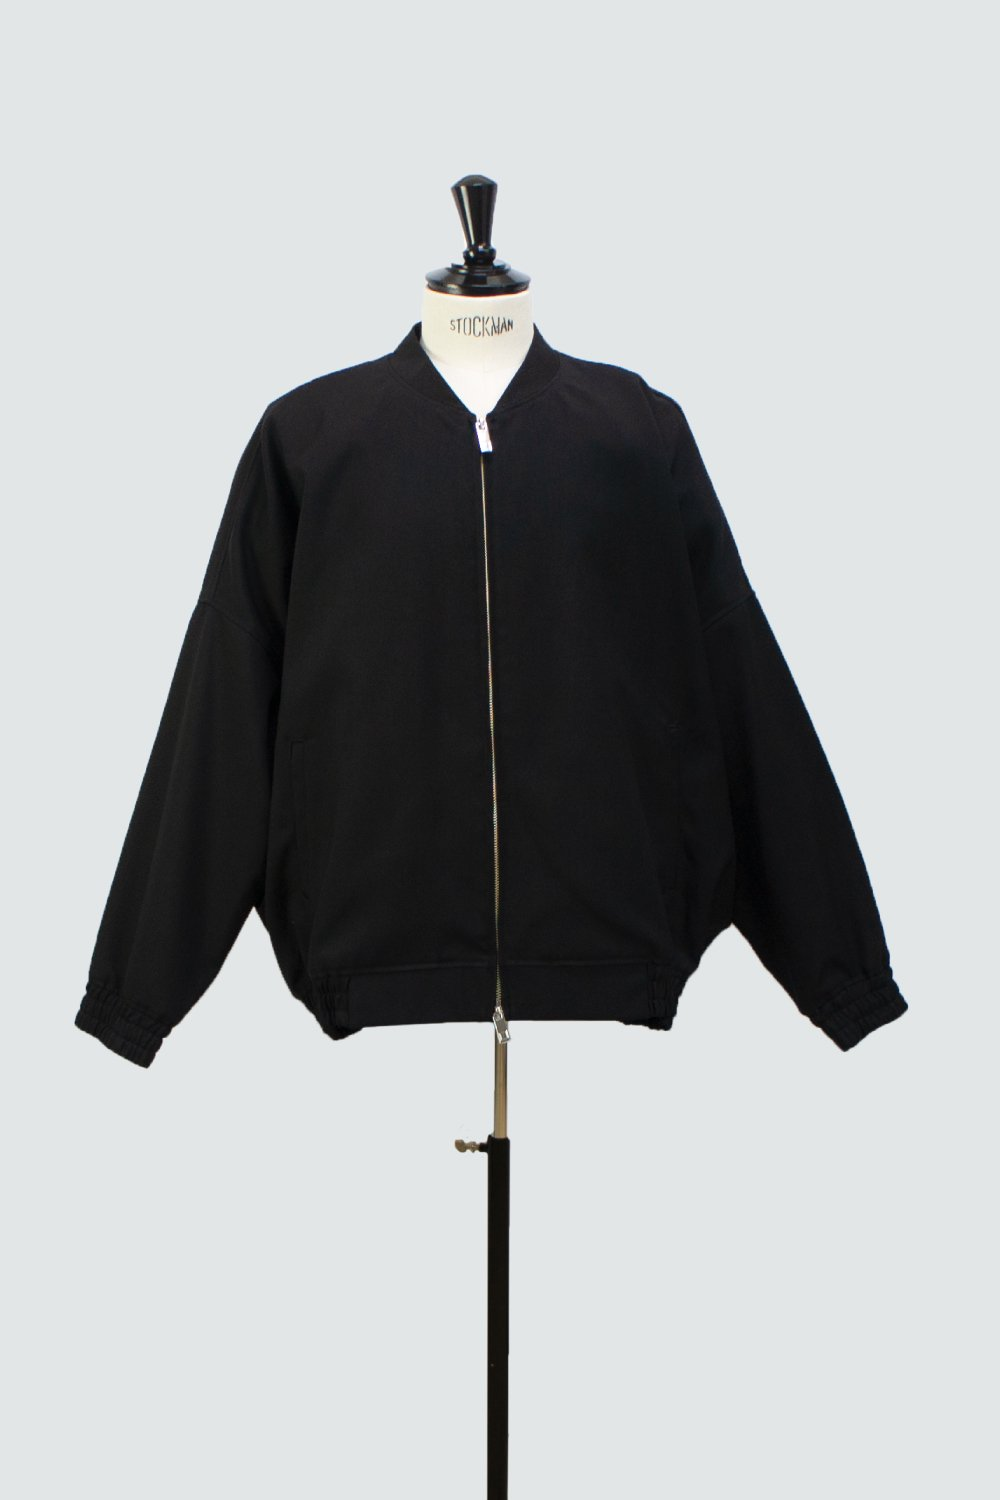 EMB. BALLOON BLOUSON BLACK